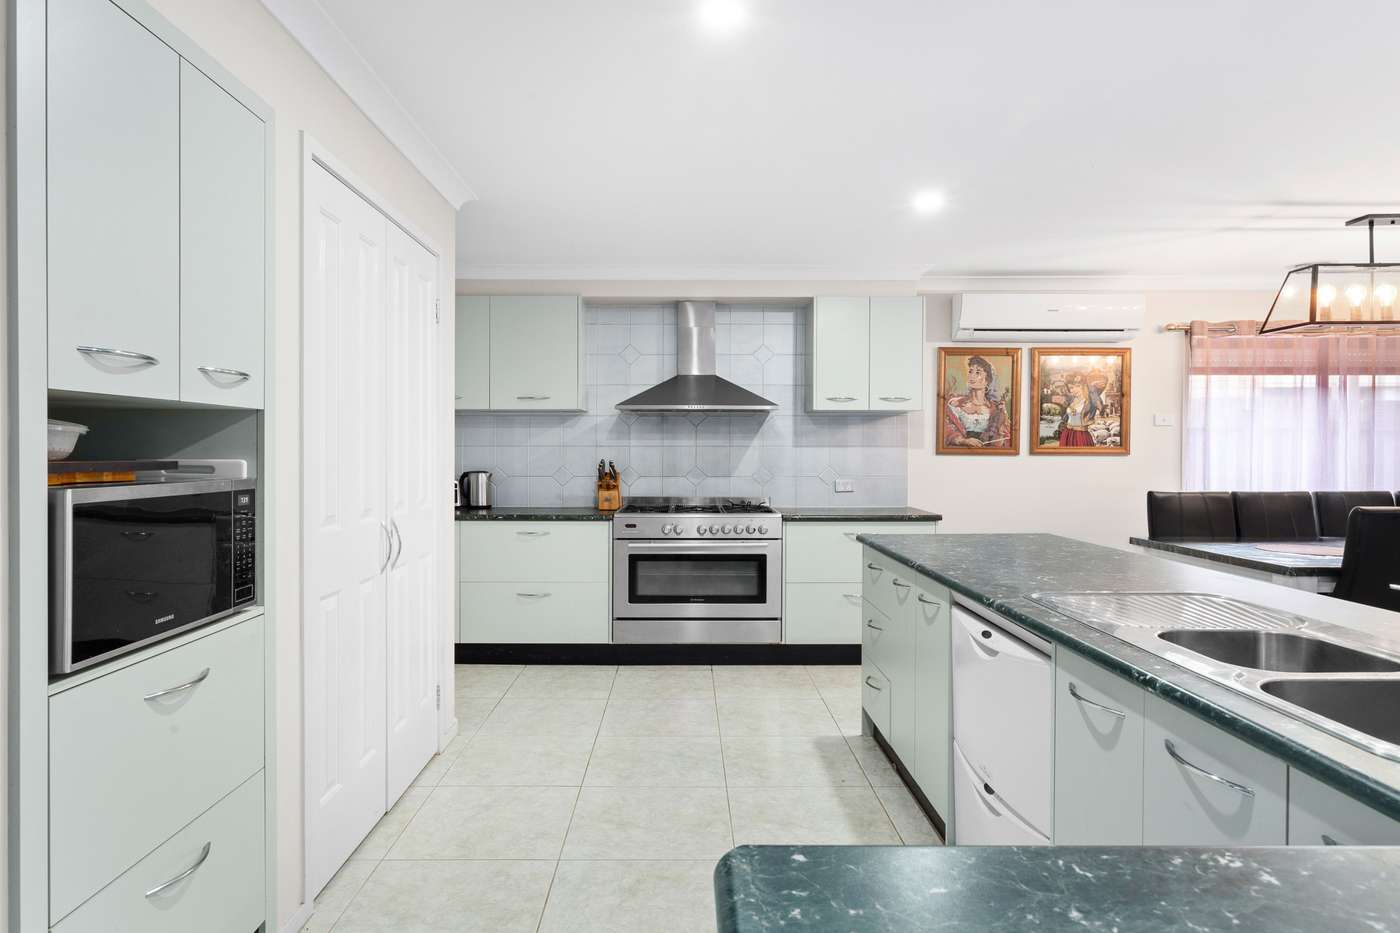 Main view of Homely house listing, 36 Grand Central Boulevard, Pakenham, VIC 3810